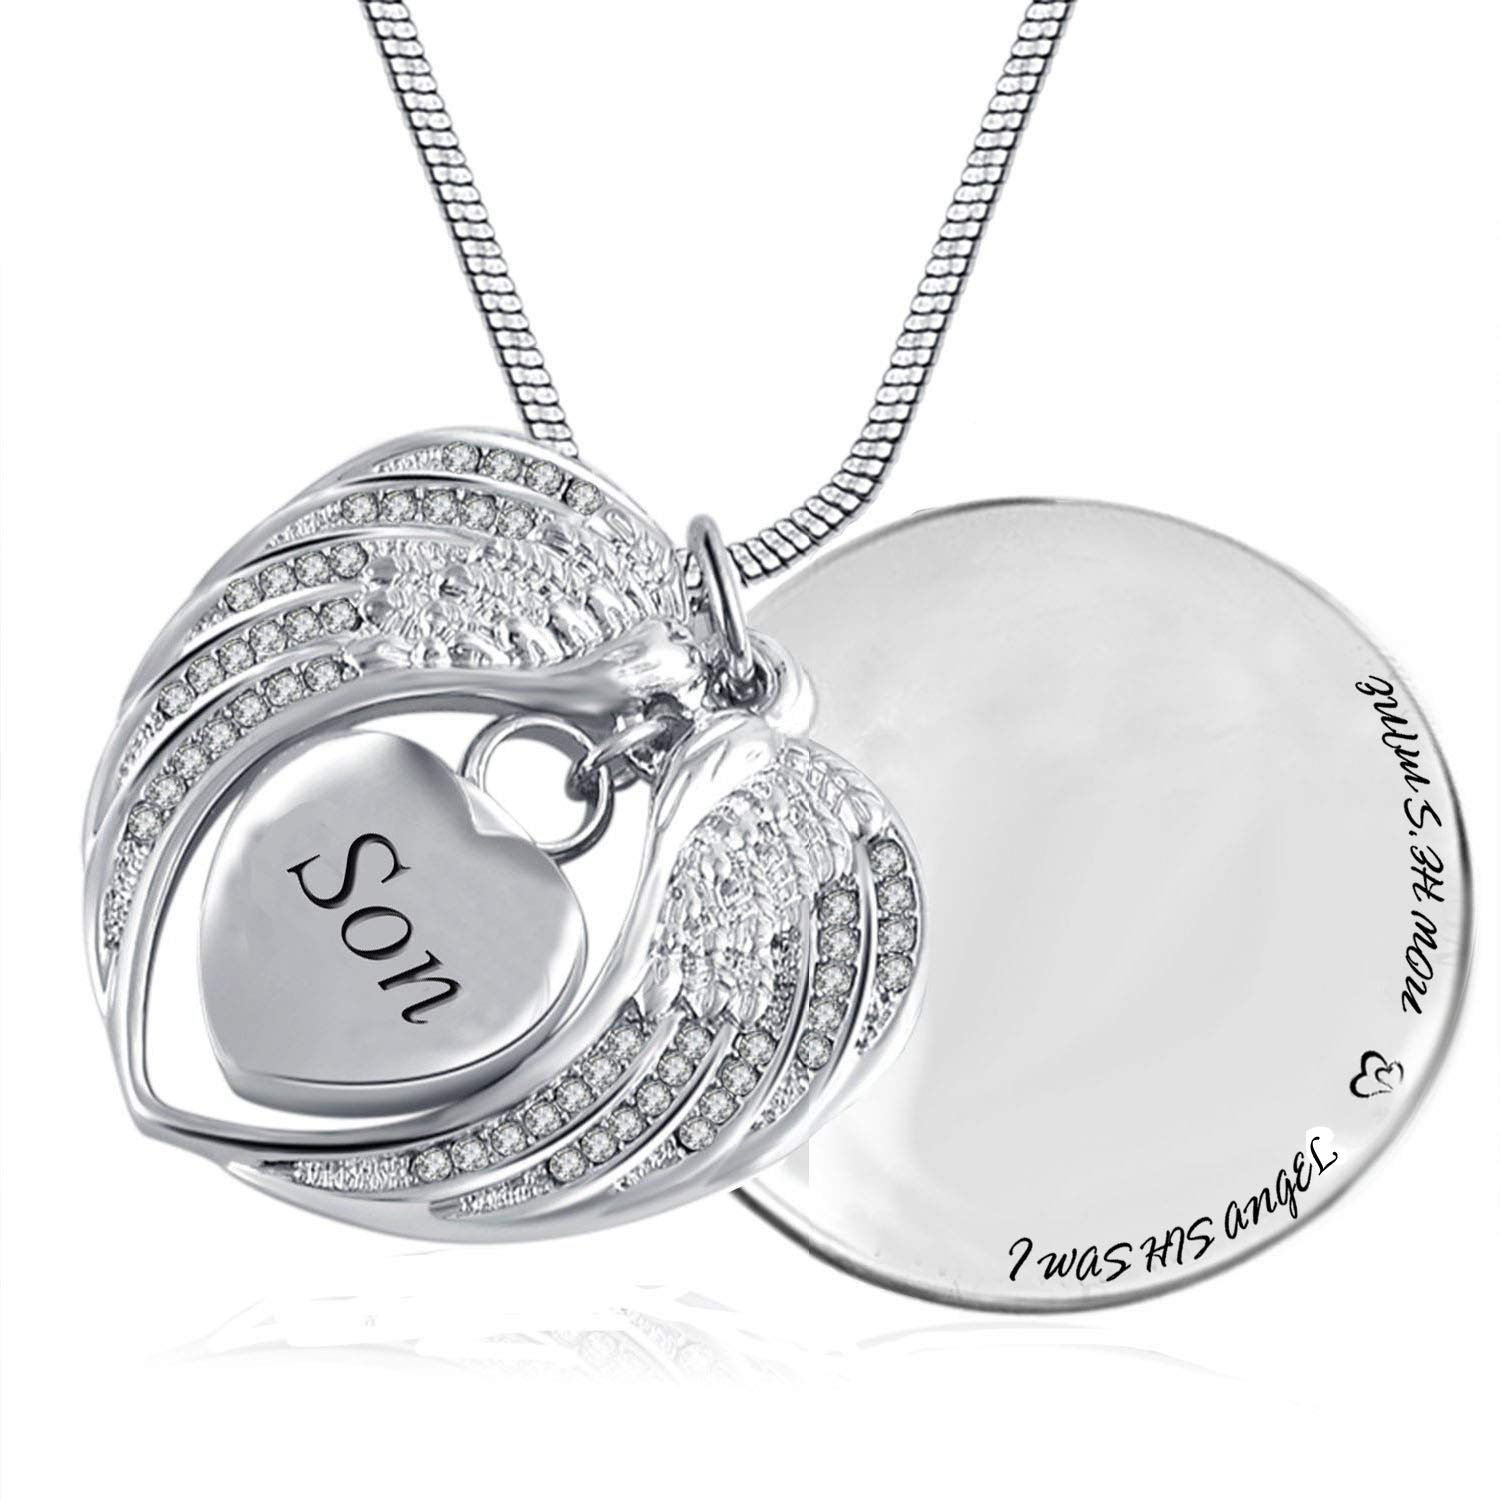 az0719 Heart Cremation Memorial Keepsake Pendant Necklace Jewelry with Fill Kit and Gift Box Heart Cremation Memorial Keepsake Pendant Necklace Jewelry with Fill Kit and Gift Box Angel Wing Urn Necklace for Ashes Grandpa